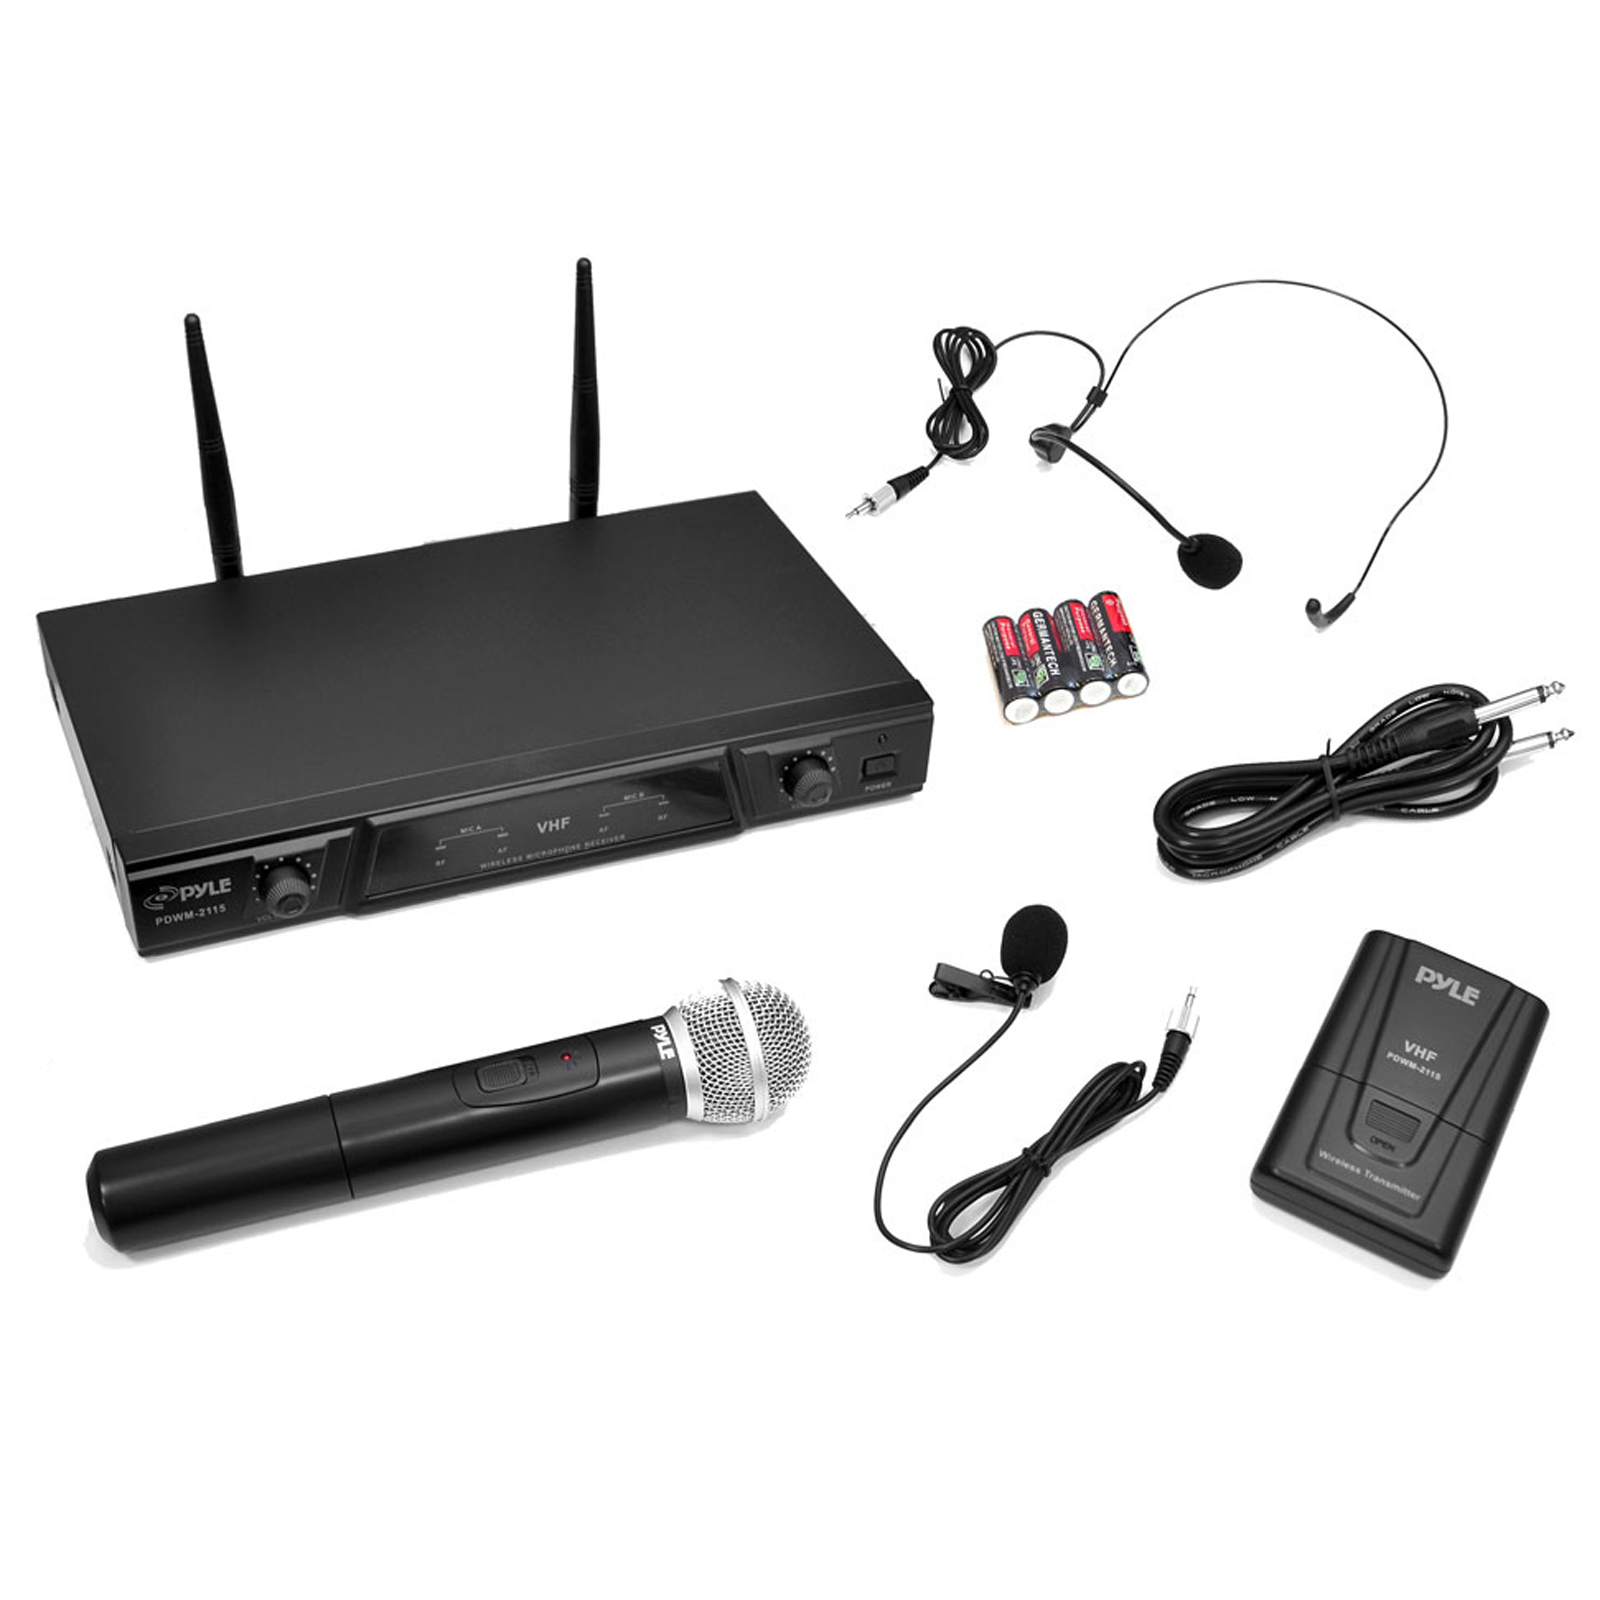 Pyle-Pro VHF Wireless Microphone Receiver System with Independent Volume Control, Handheld... by Pyle Pro